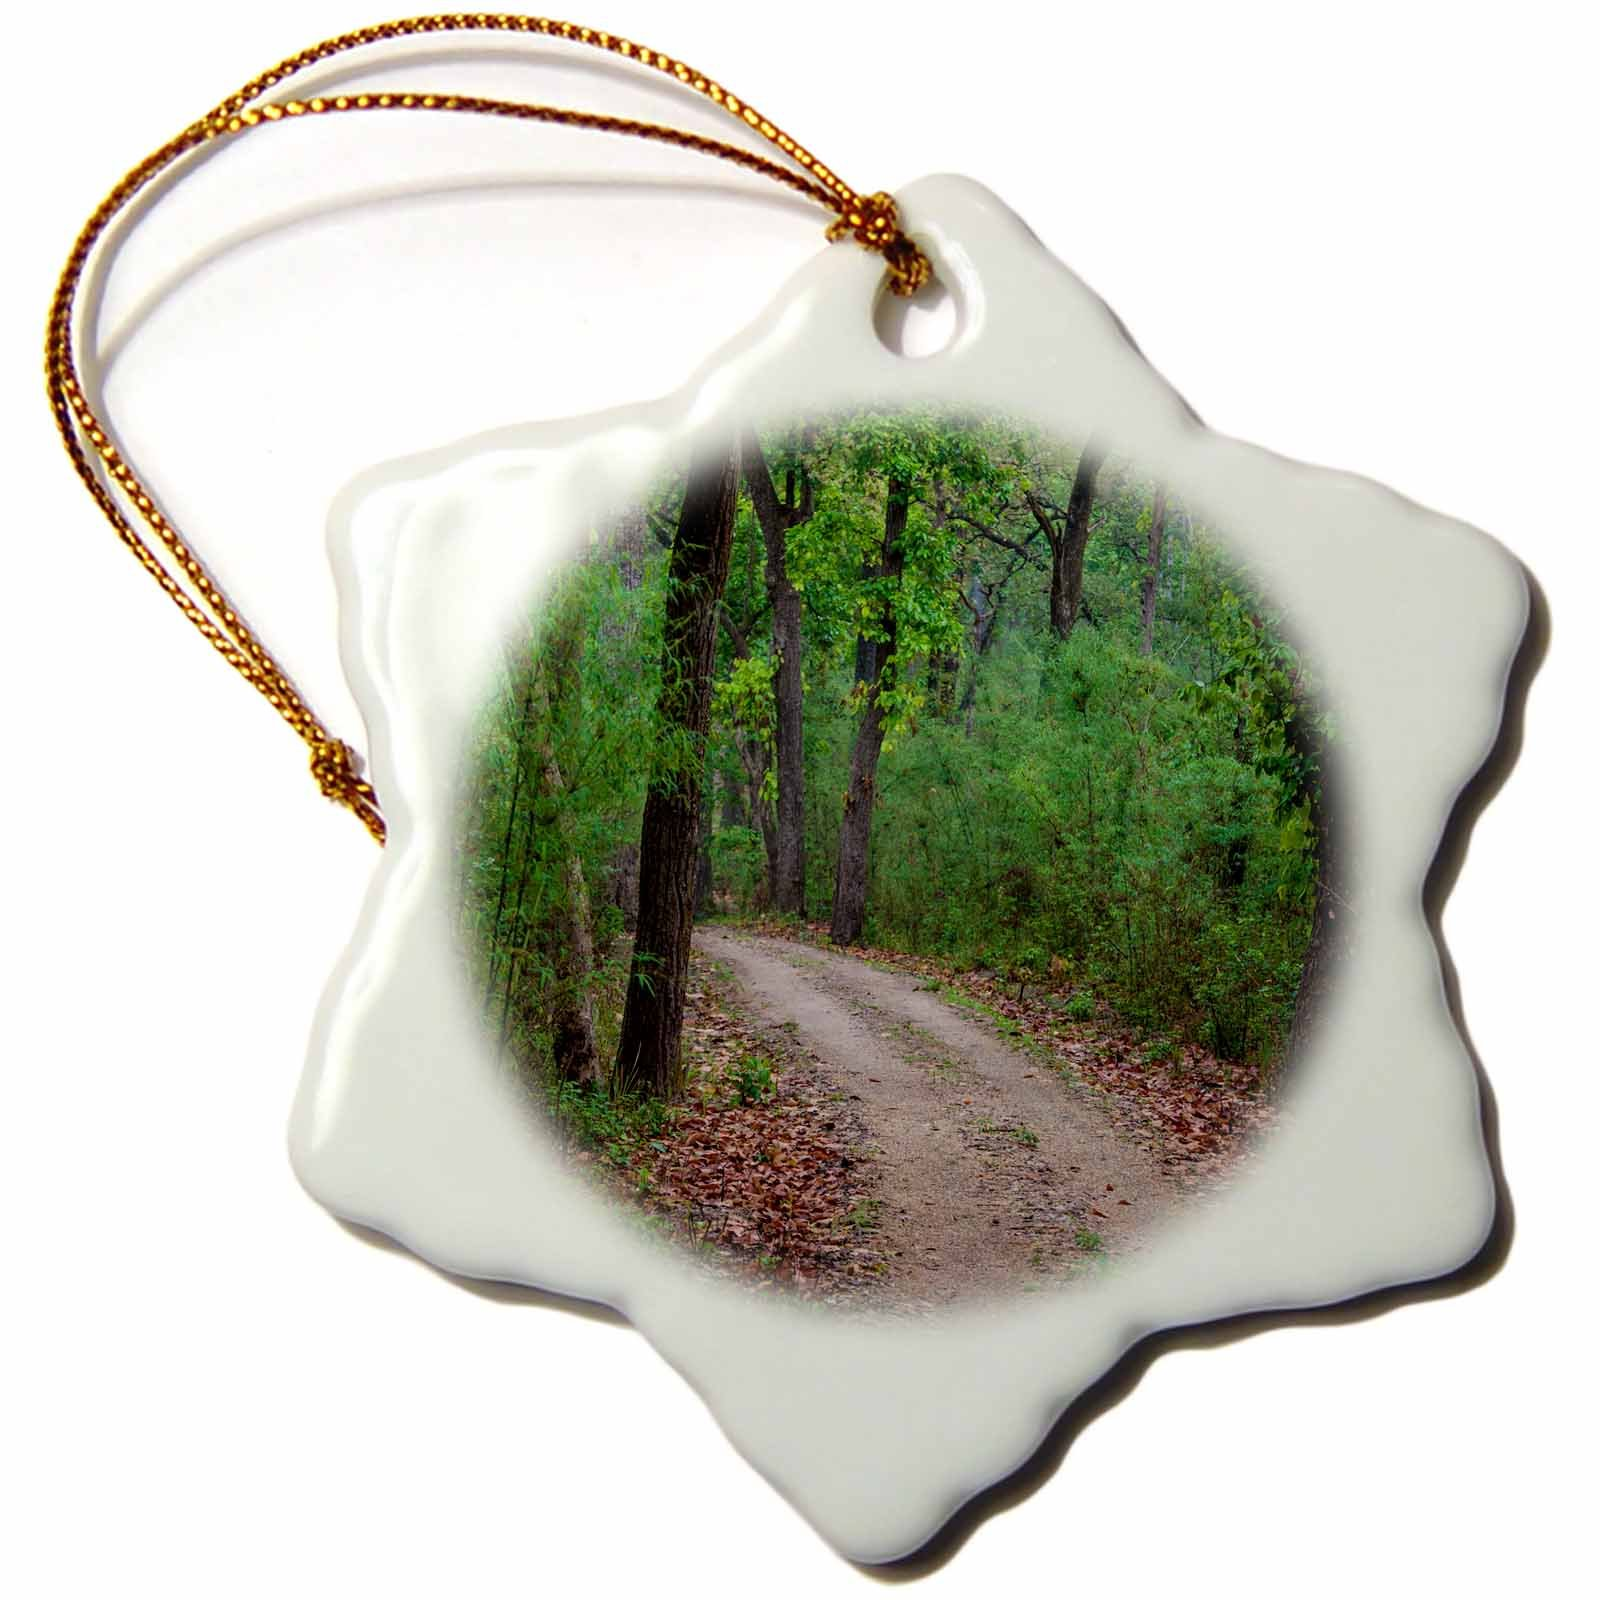 3dRose Danita Delimont - Roads - India. Sal forest at Kanha tiger reserve. - 3 inch Snowflake Porcelain Ornament (orn_276816_1)